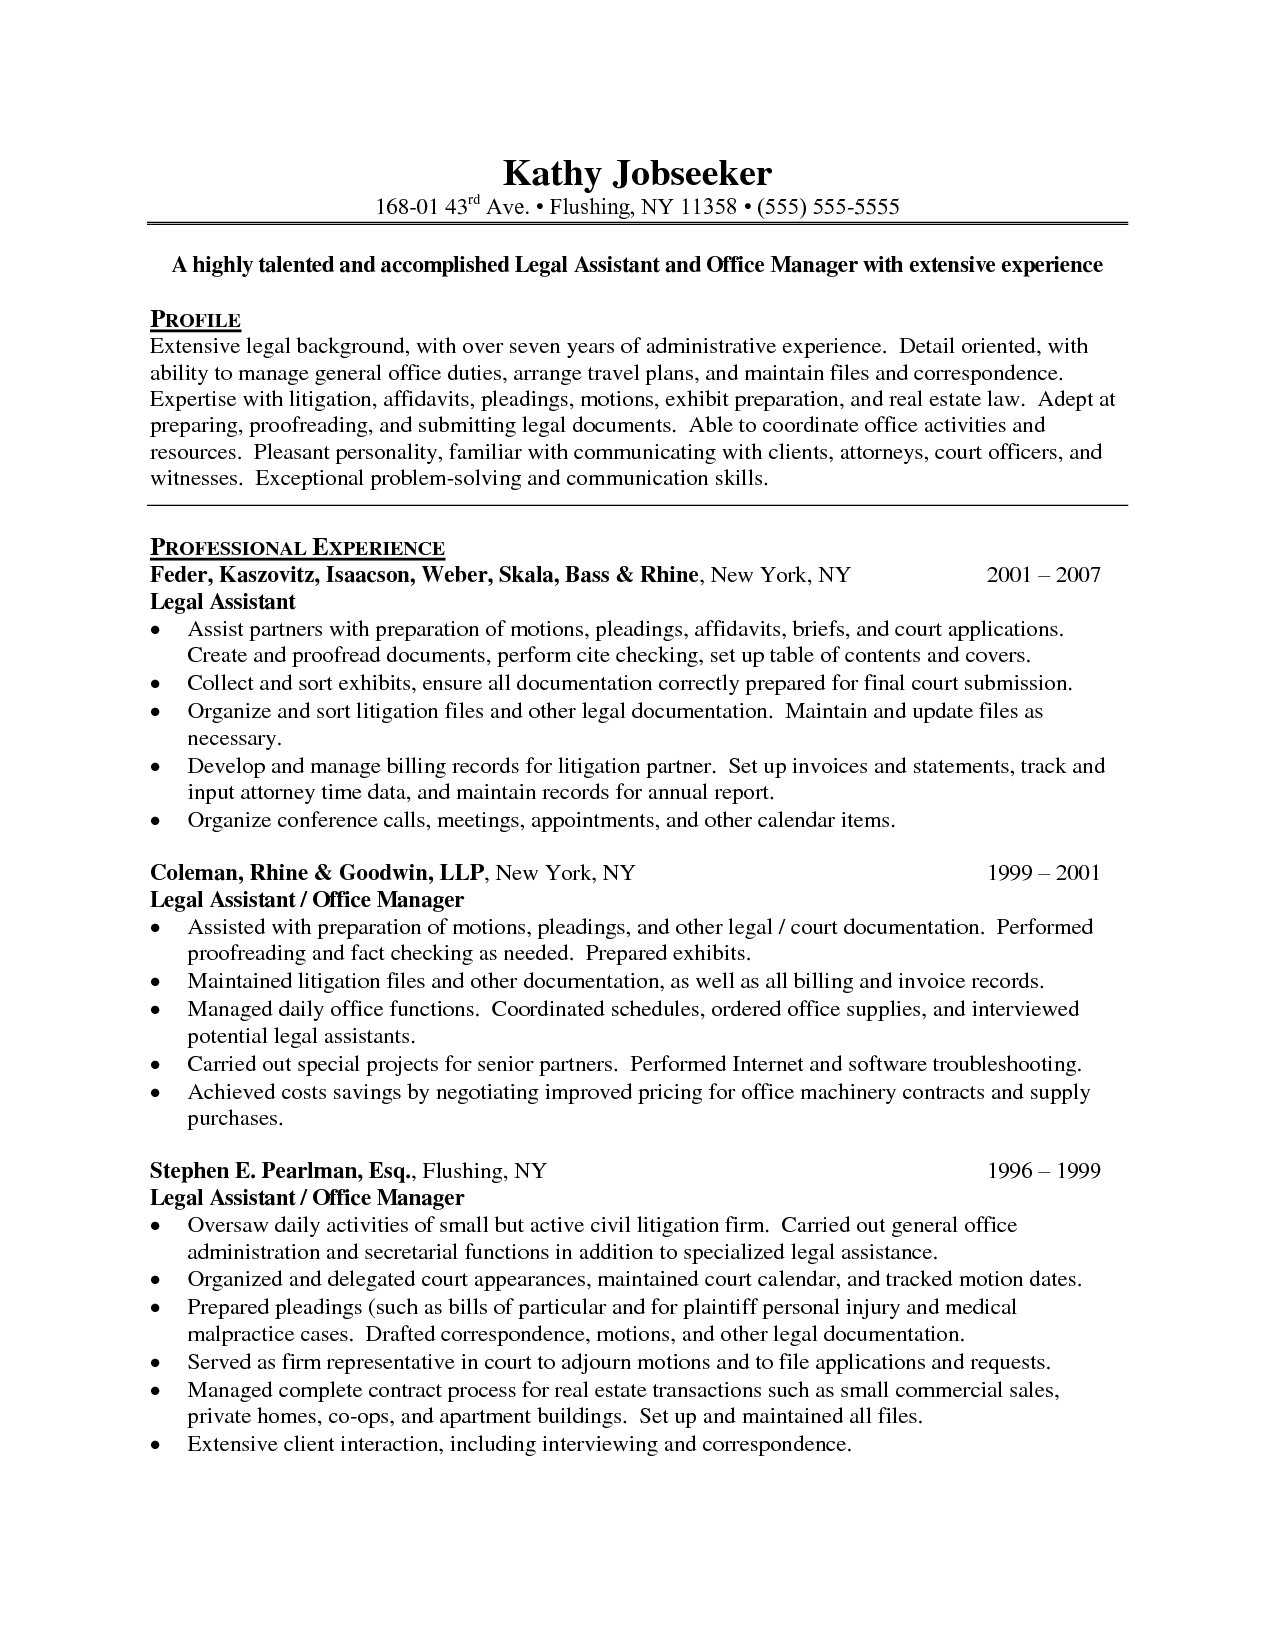 Resume Objective Examples For Healthcare Health Law Attorney Cover Letter Transplant Social Worker Sample